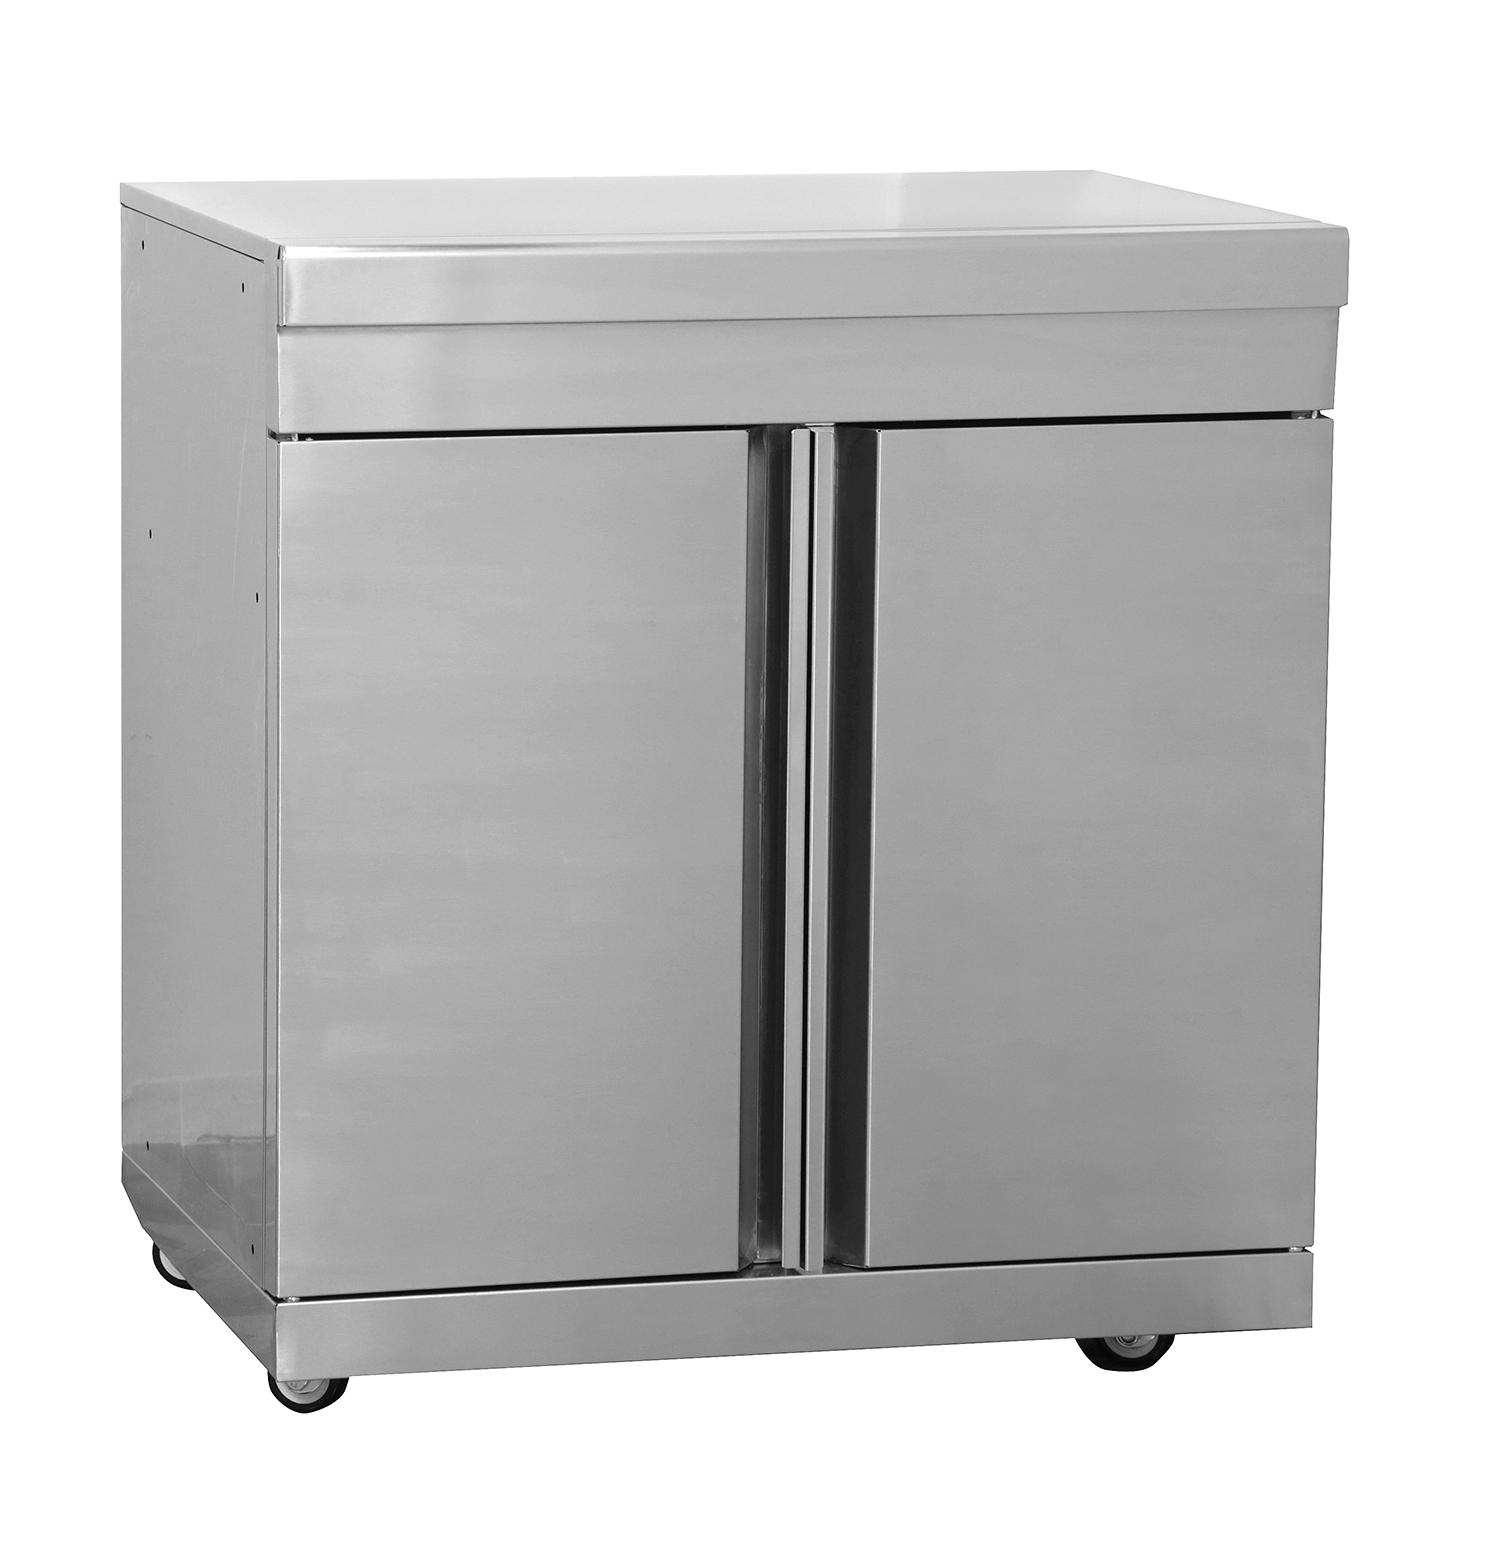 Grill Cabinet